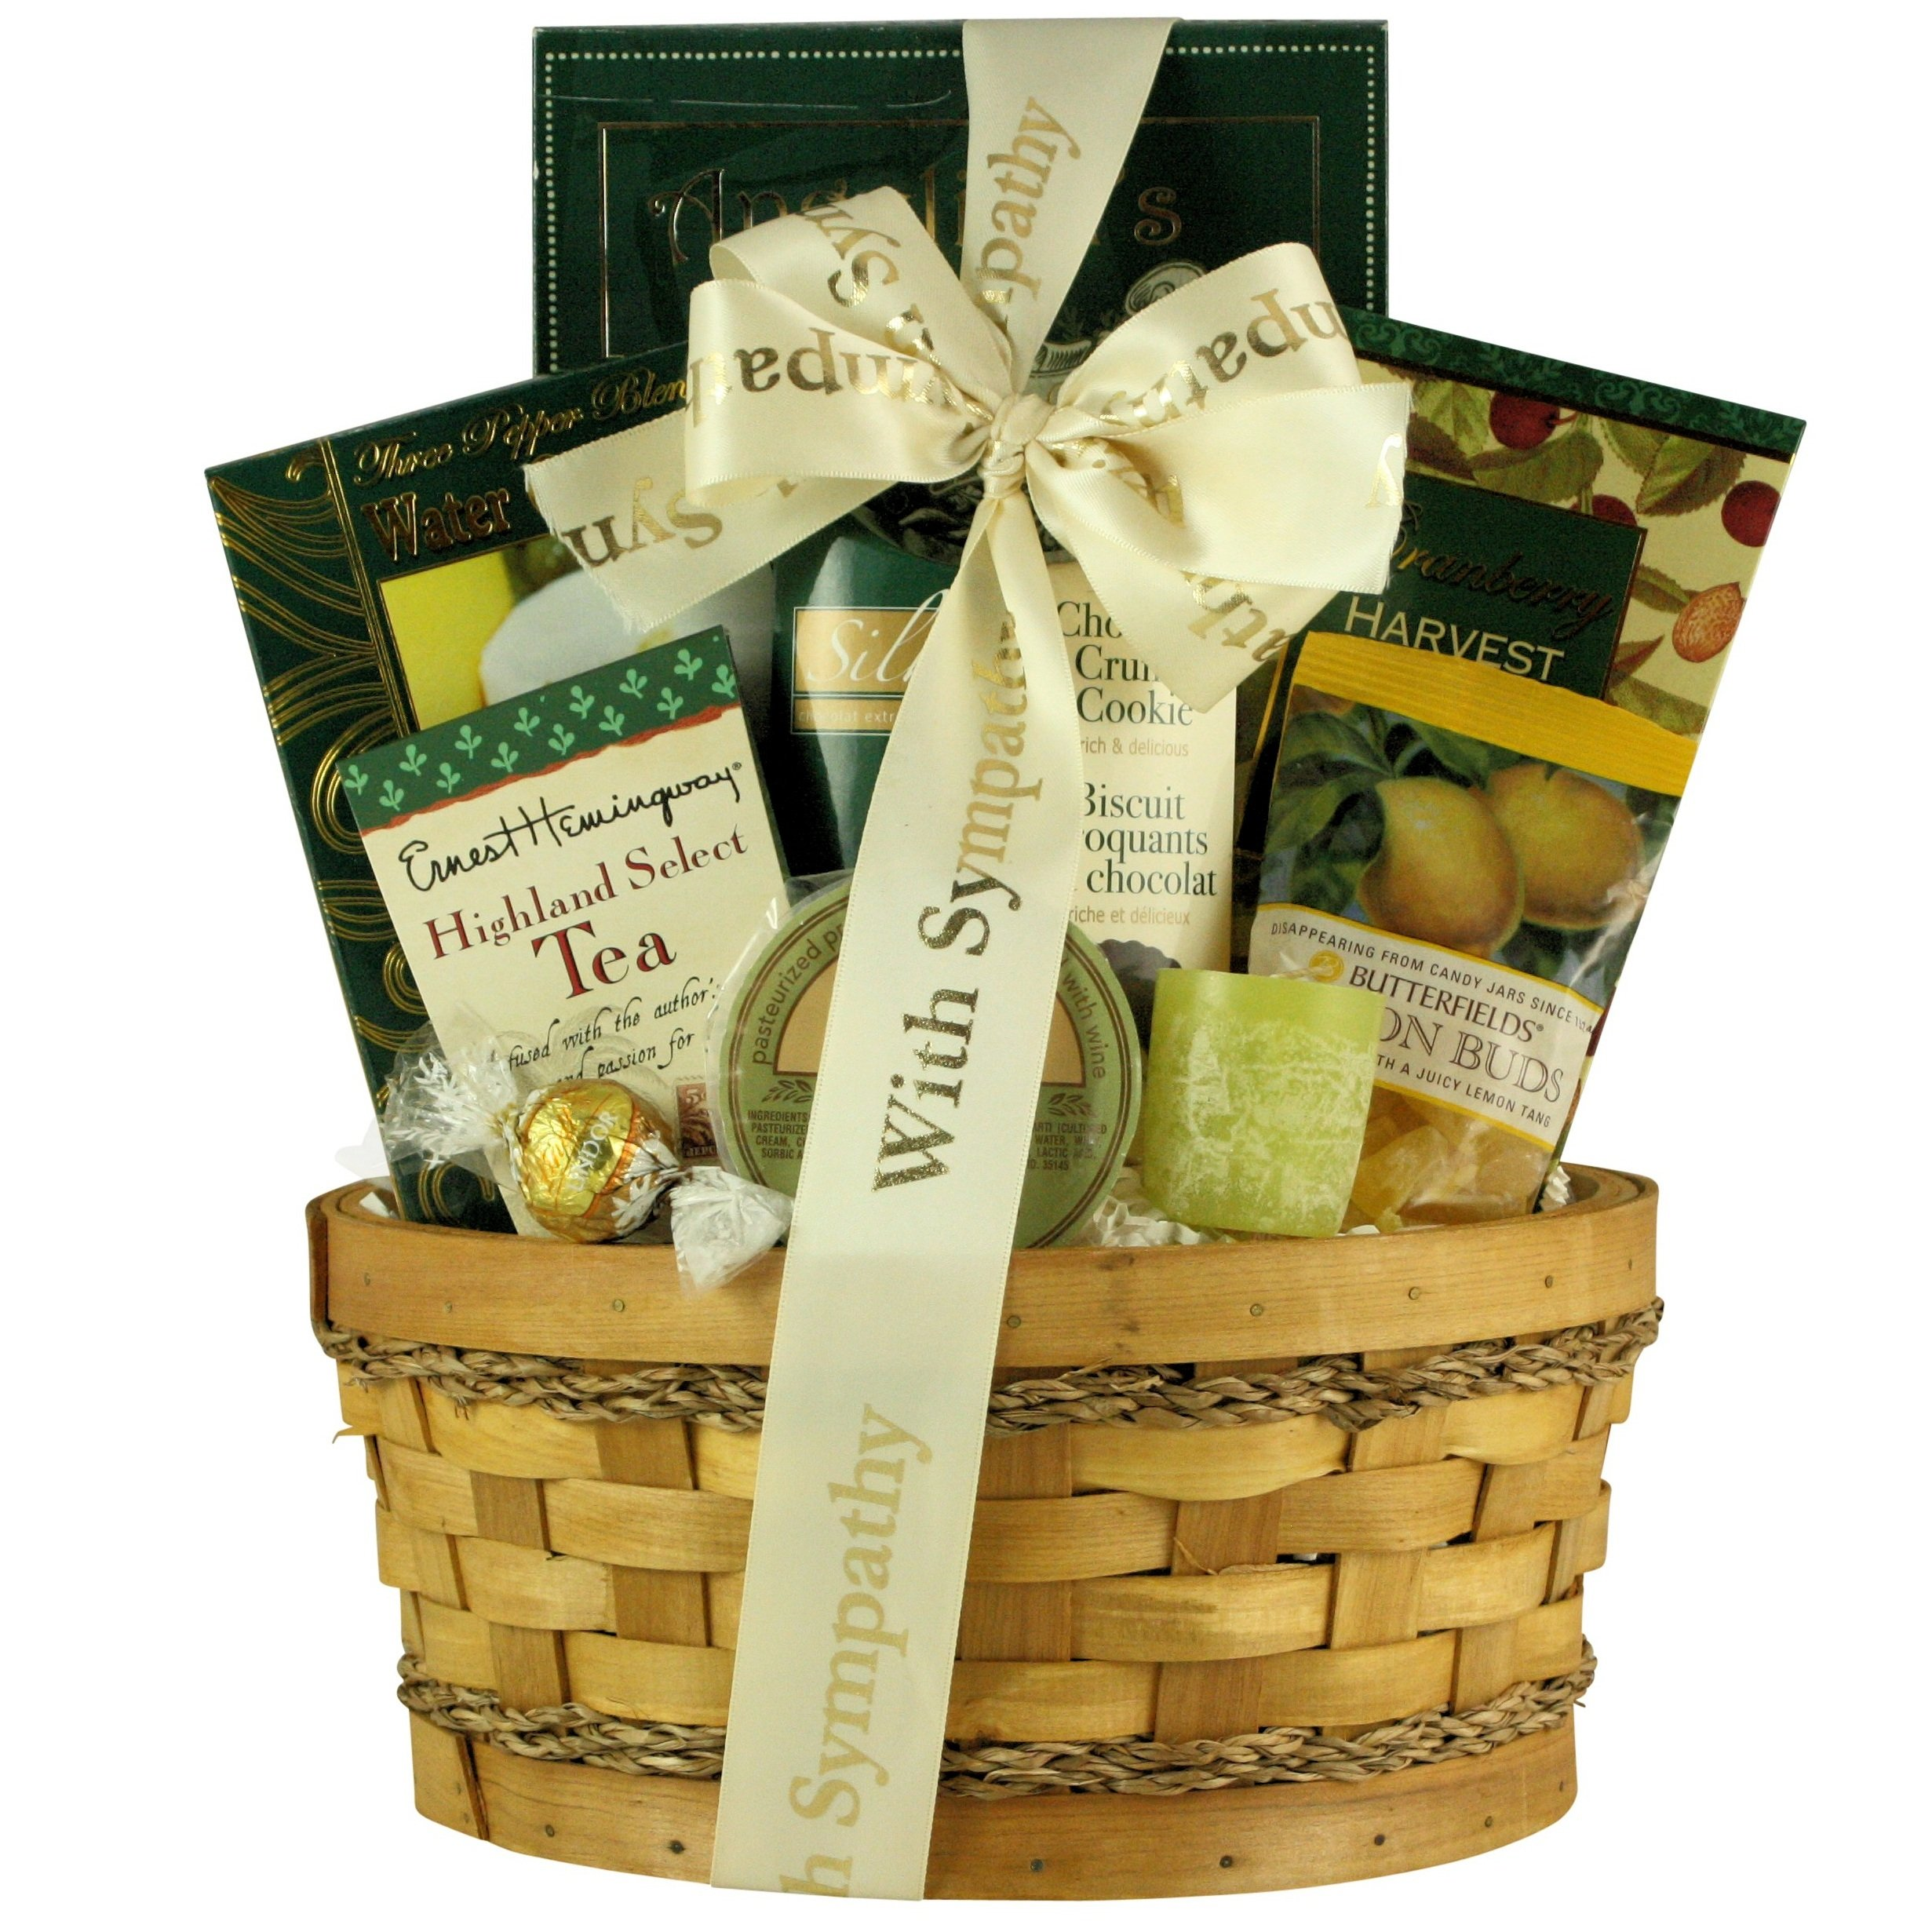 GreatArrivals Thinking Of You Sympathy Gift Basket, 4 Pound by GreatArrivals Gift Baskets (Image #1)